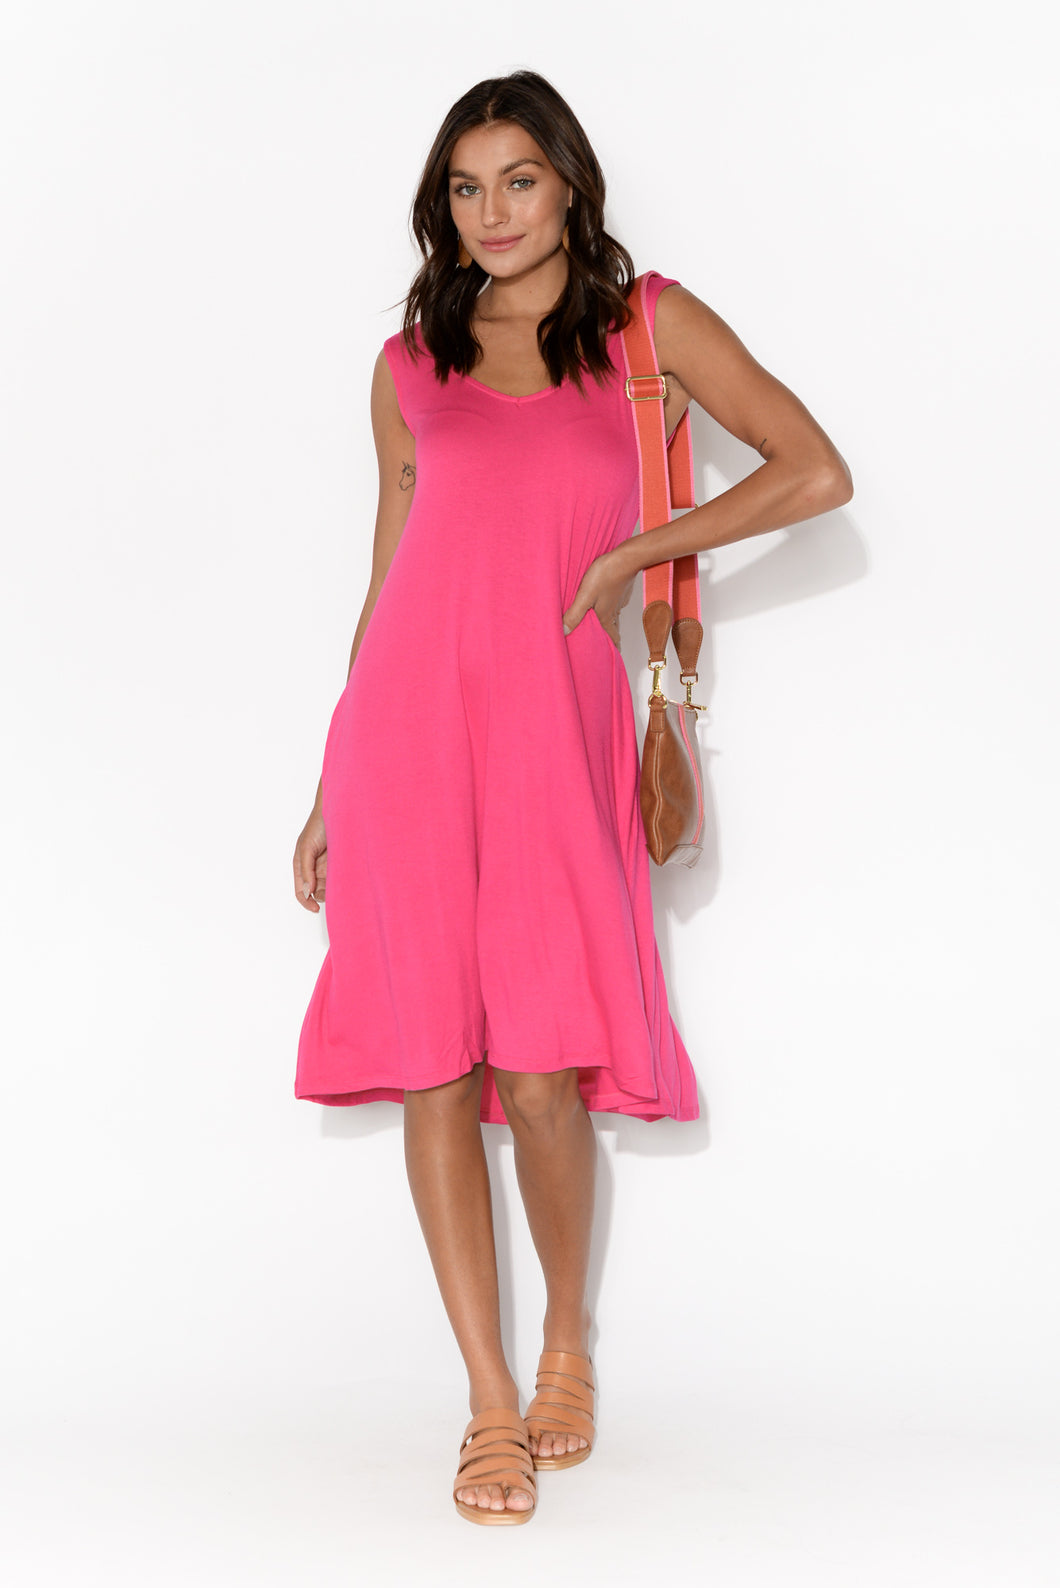 Oman Hot Pink Sleeveless Dress